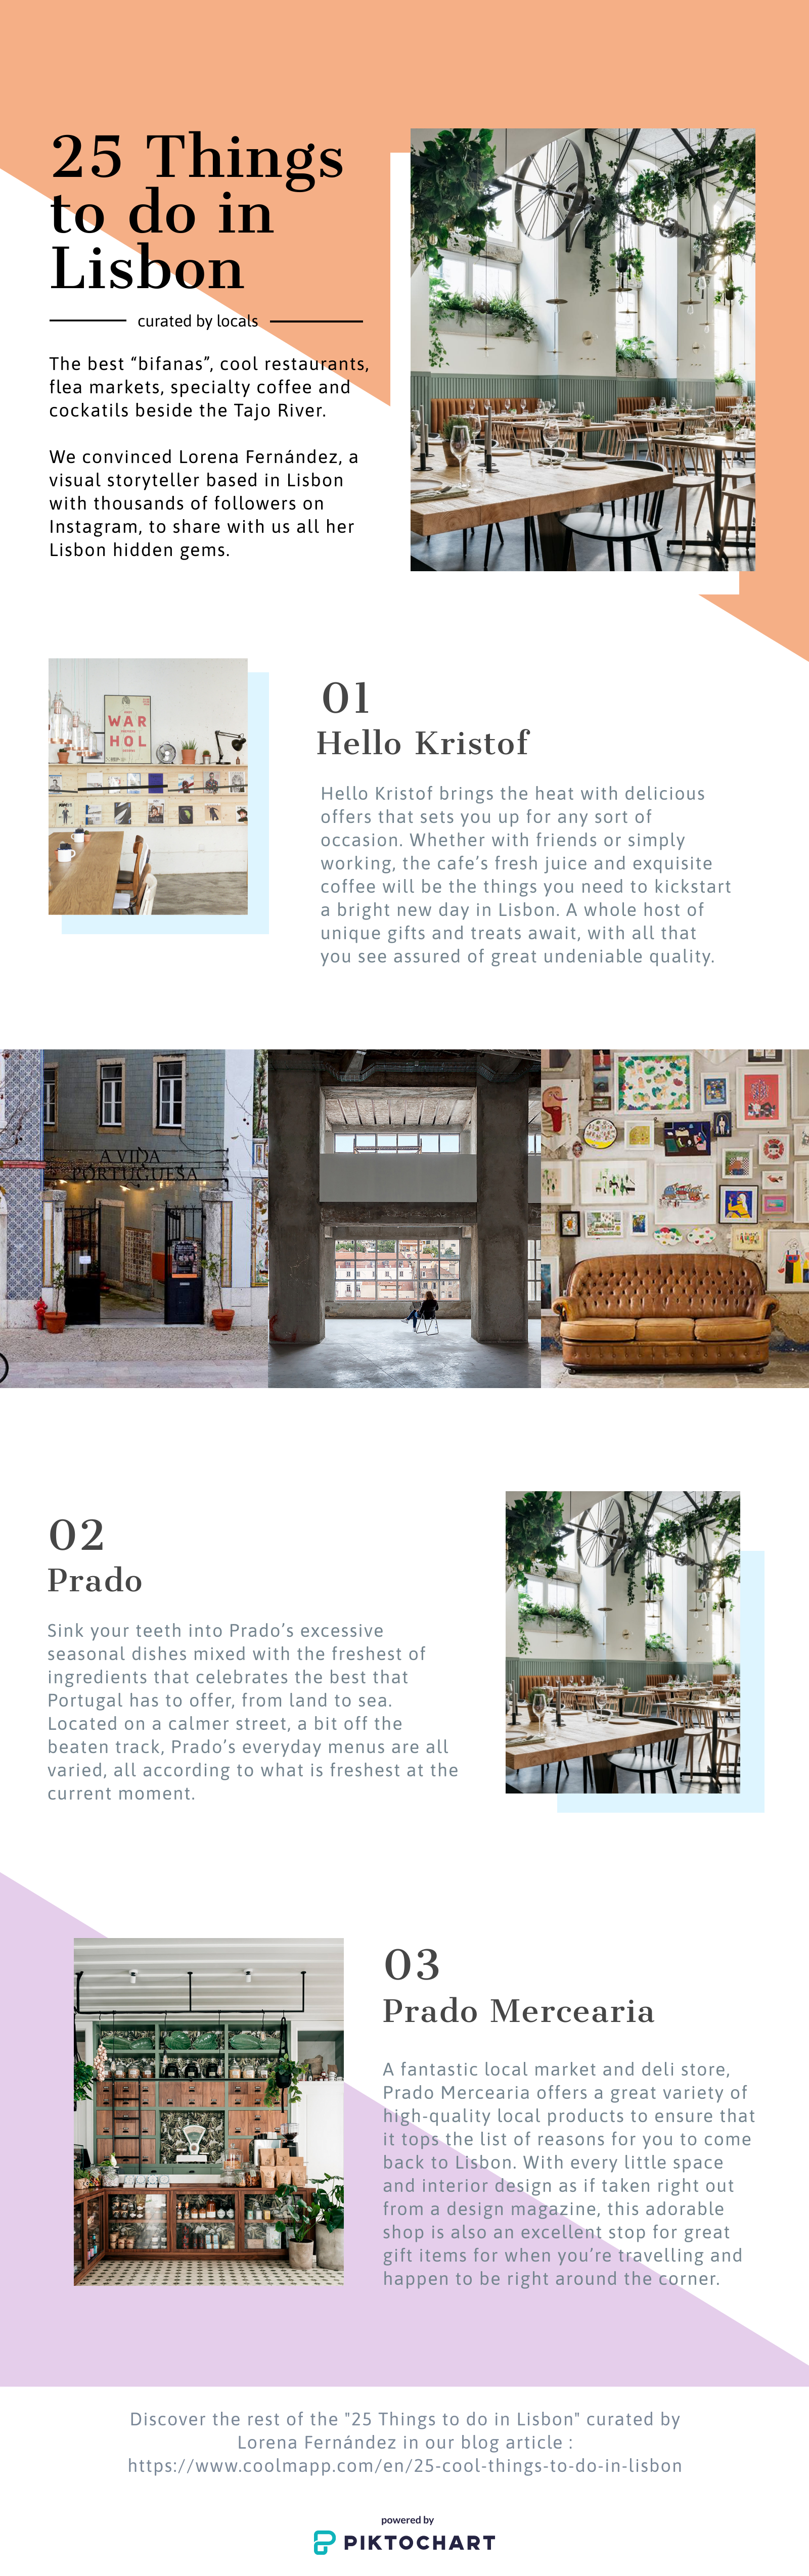 An infographic with 25 cool things to do in Lisbon - like restaurants, coffeeshops, bars, hotels, apartments, etc